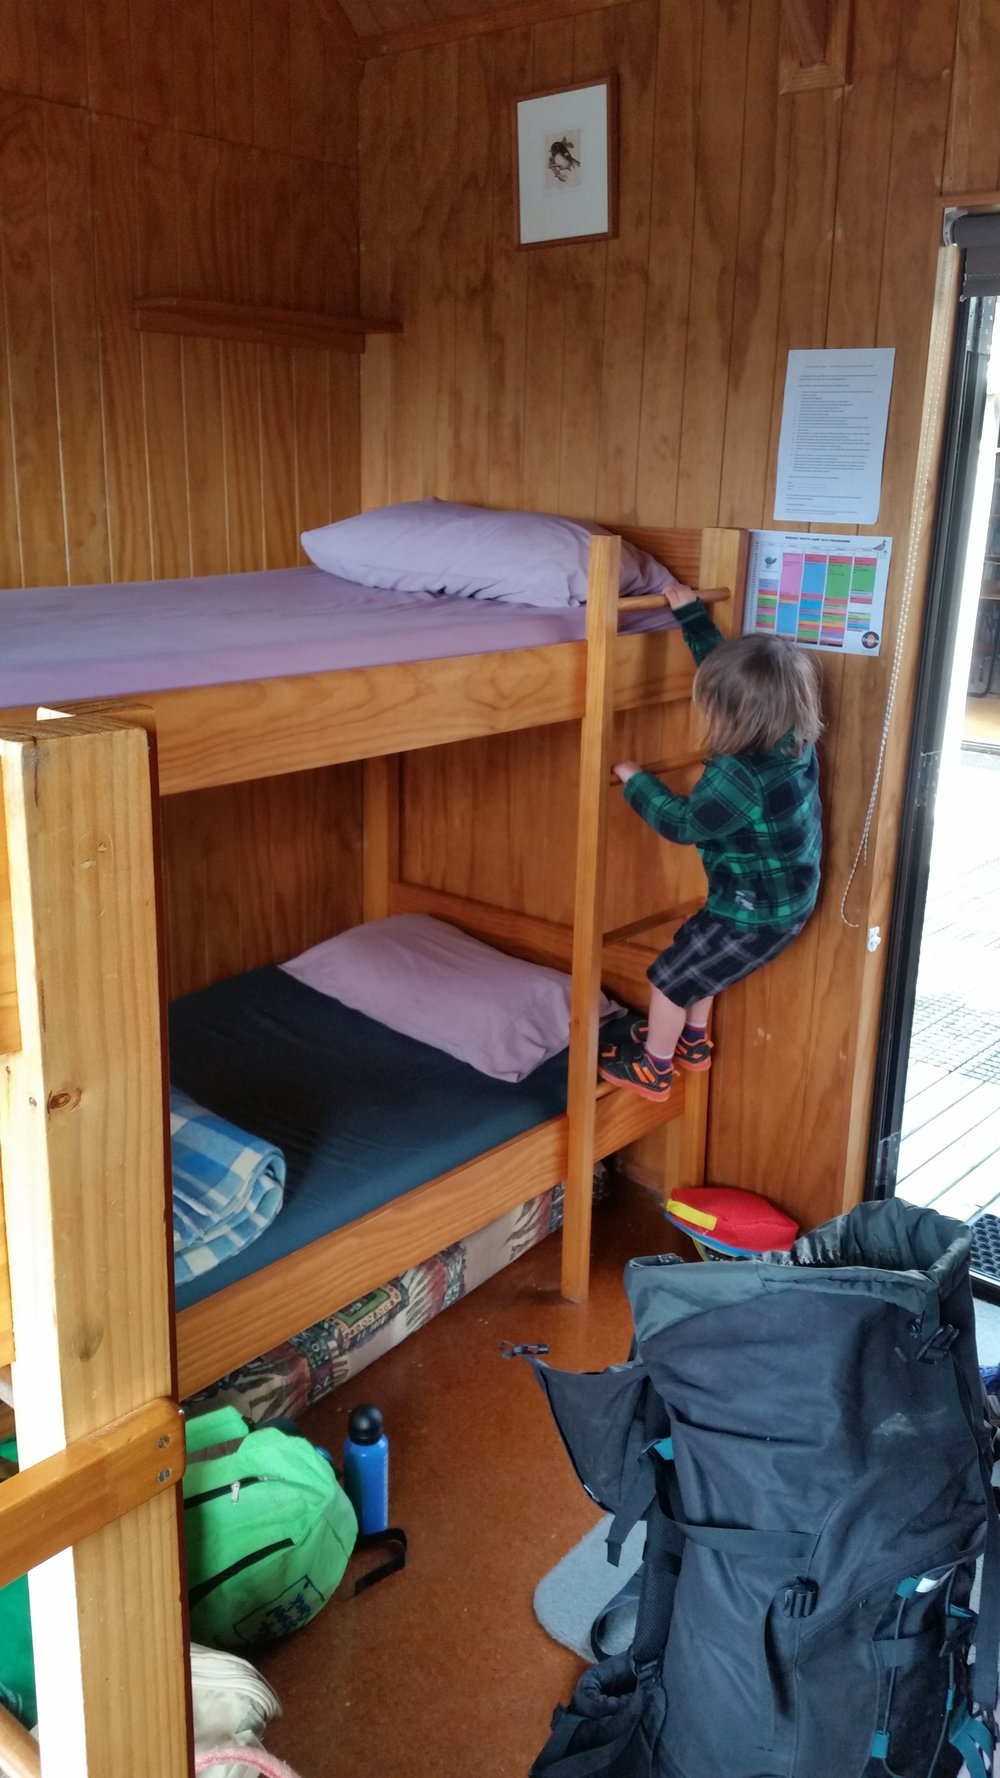 Luke trying to lay claim to the top bunk